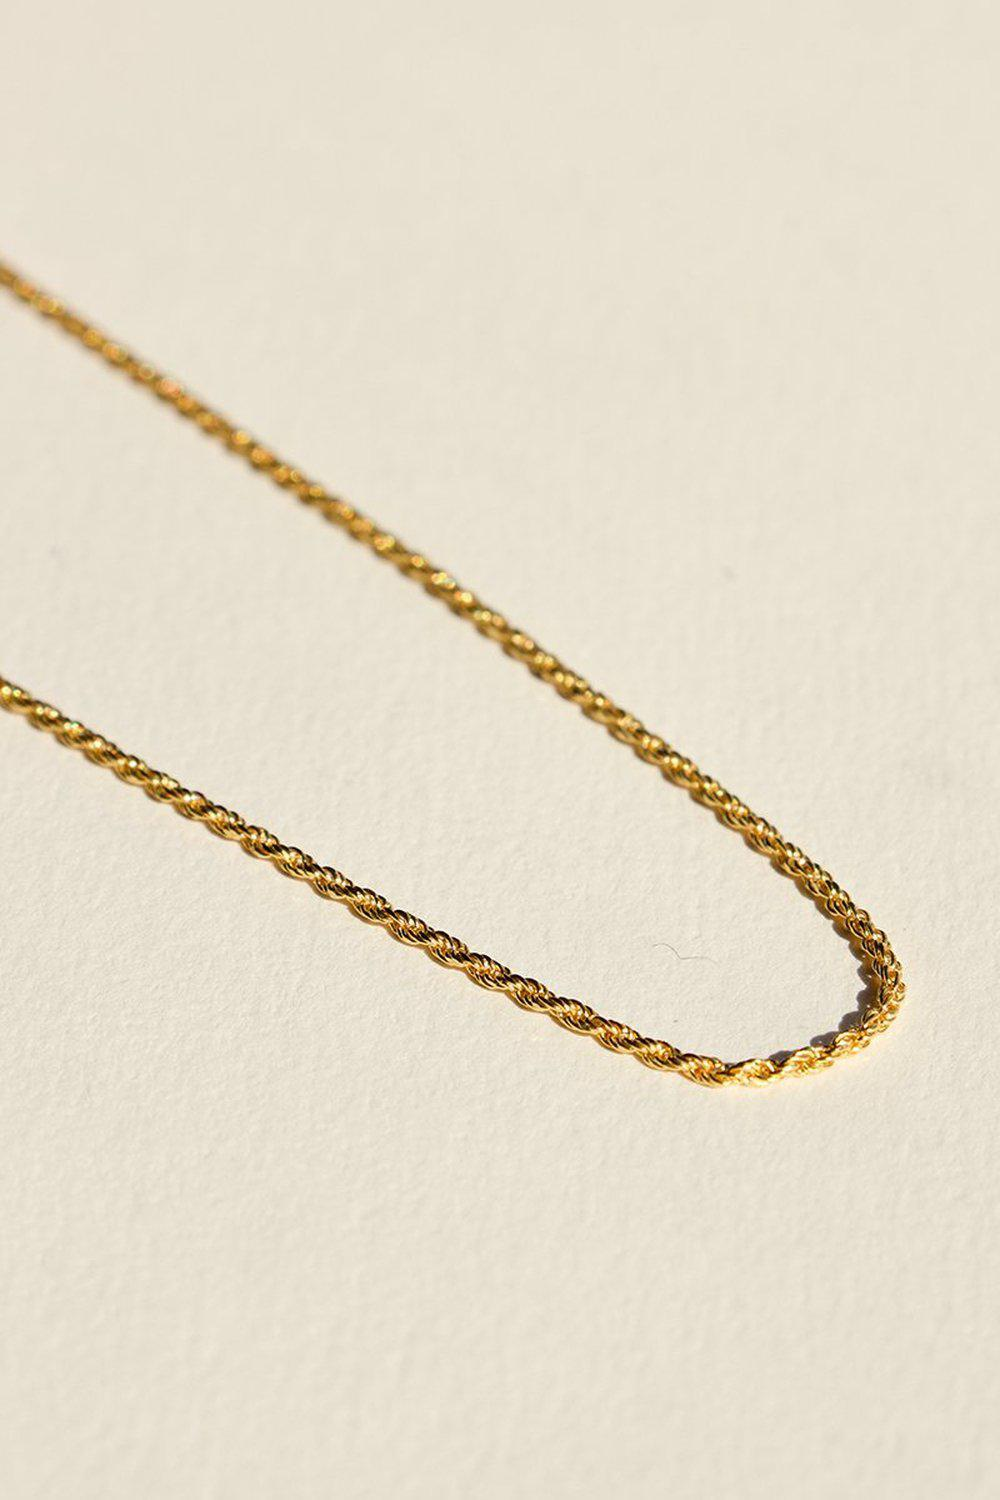 925 Twist Chain Necklace / Gold | Brie Leon | Mad About The Boy